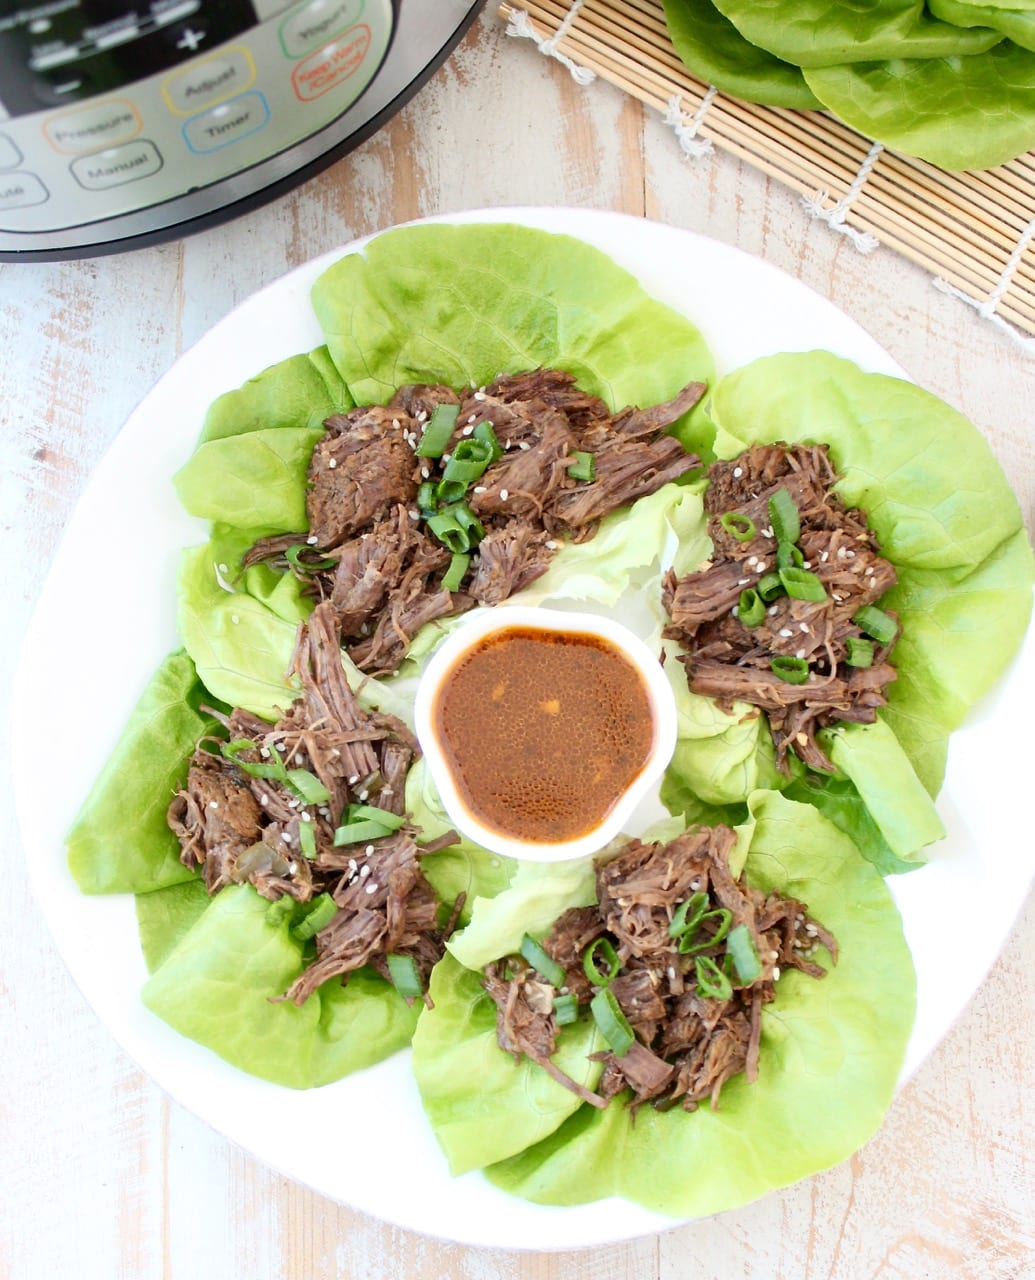 Whole30 Thai Beef is easy to make in the Instant Pot in under an hour. Shred the beef and serve it in lettuce wraps for a Whole30 meal or serve it in corn tortillas for a gluten free Thai twist on Taco Tuesday!